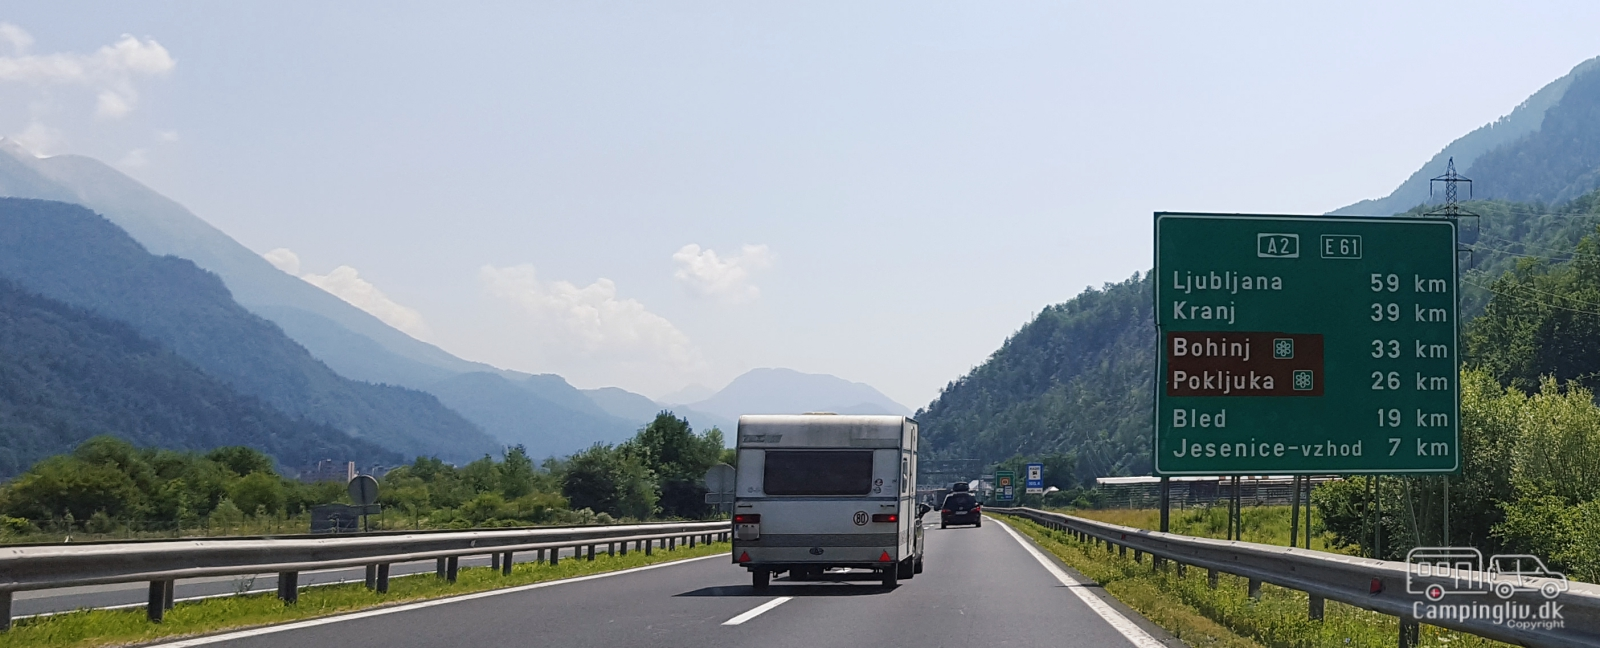 driving-to-slovenia